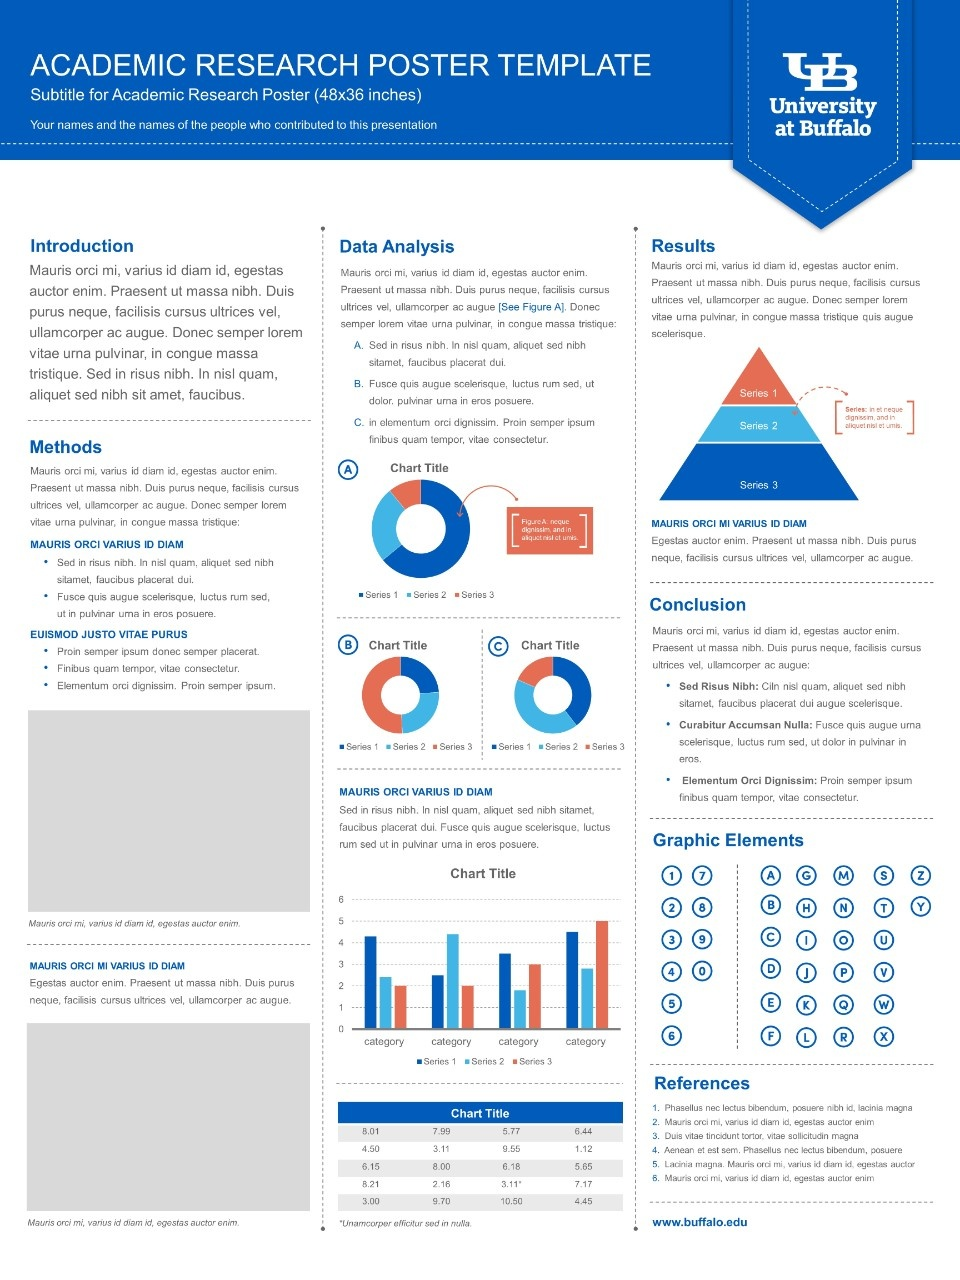 Presentation templates university at buffalo school of for How to make a poster template in powerpoint